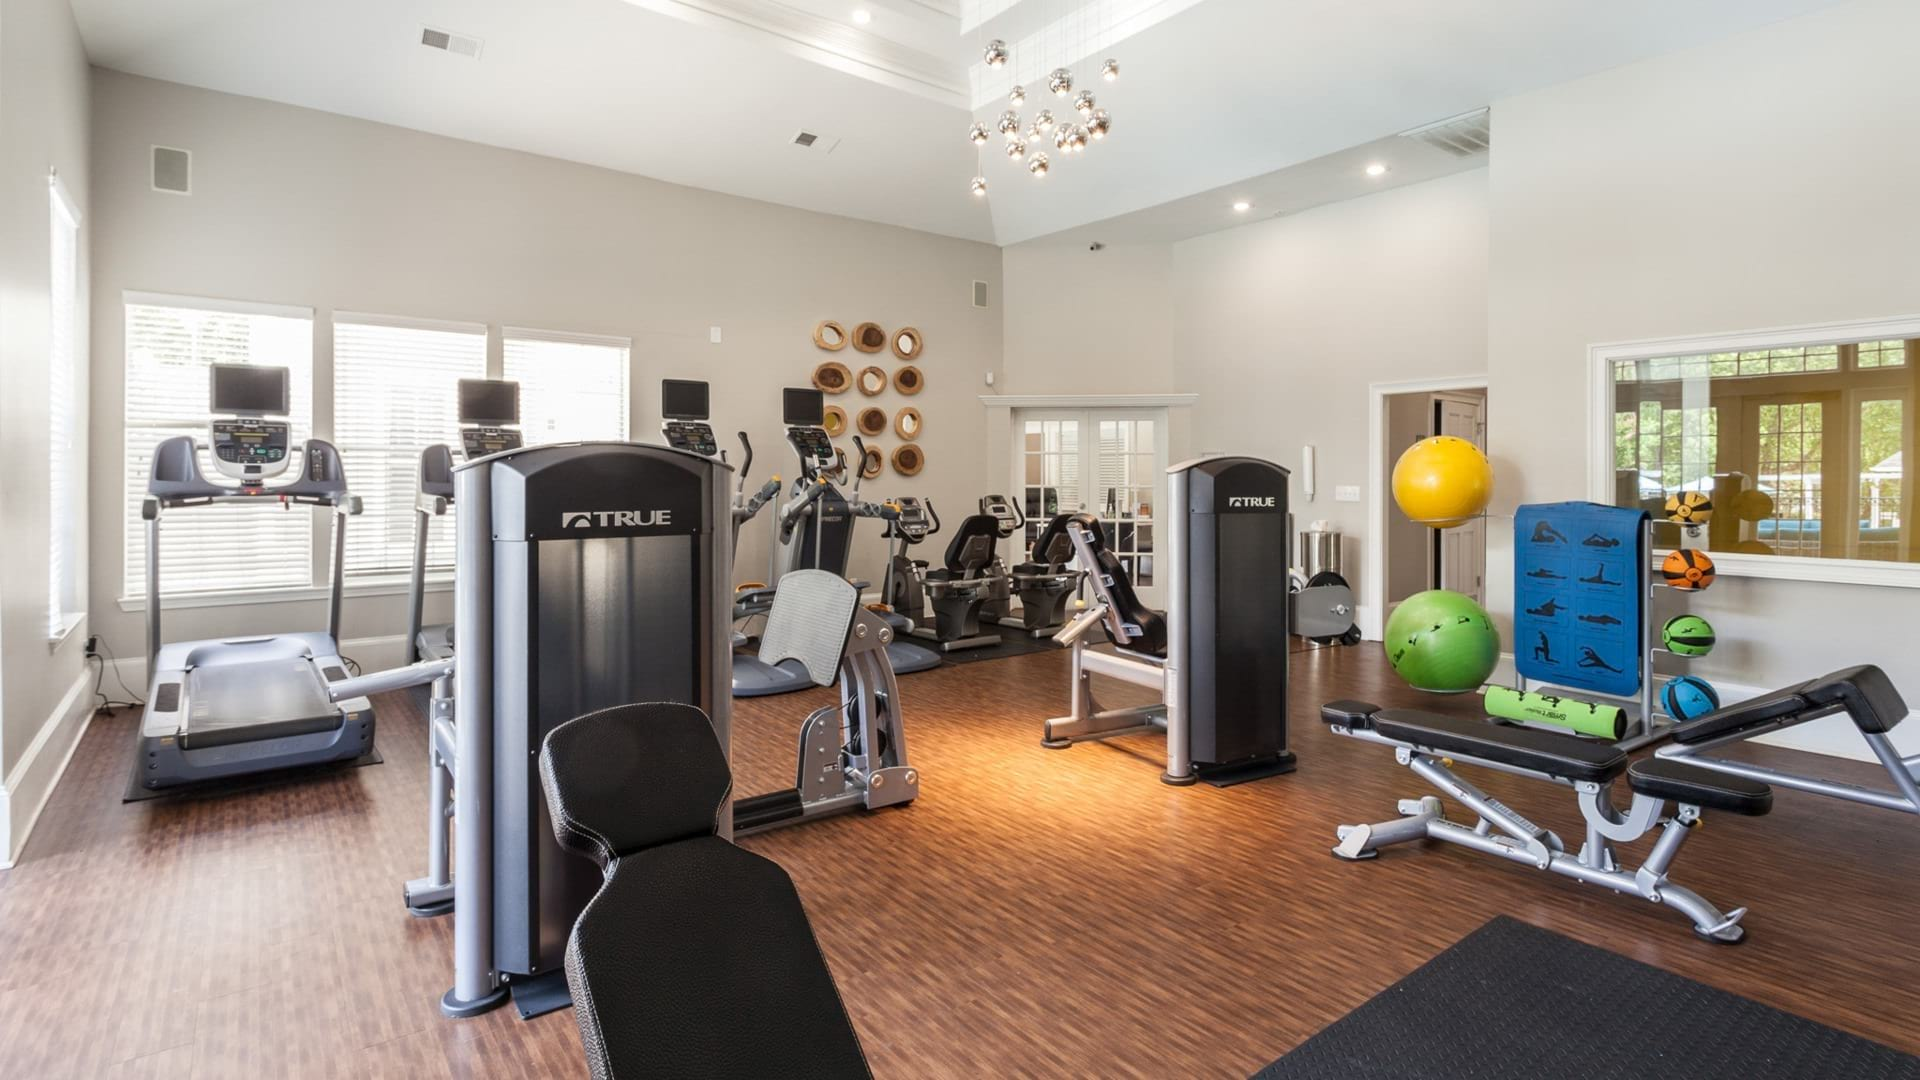 spacious fitness center with vaulted ceiling